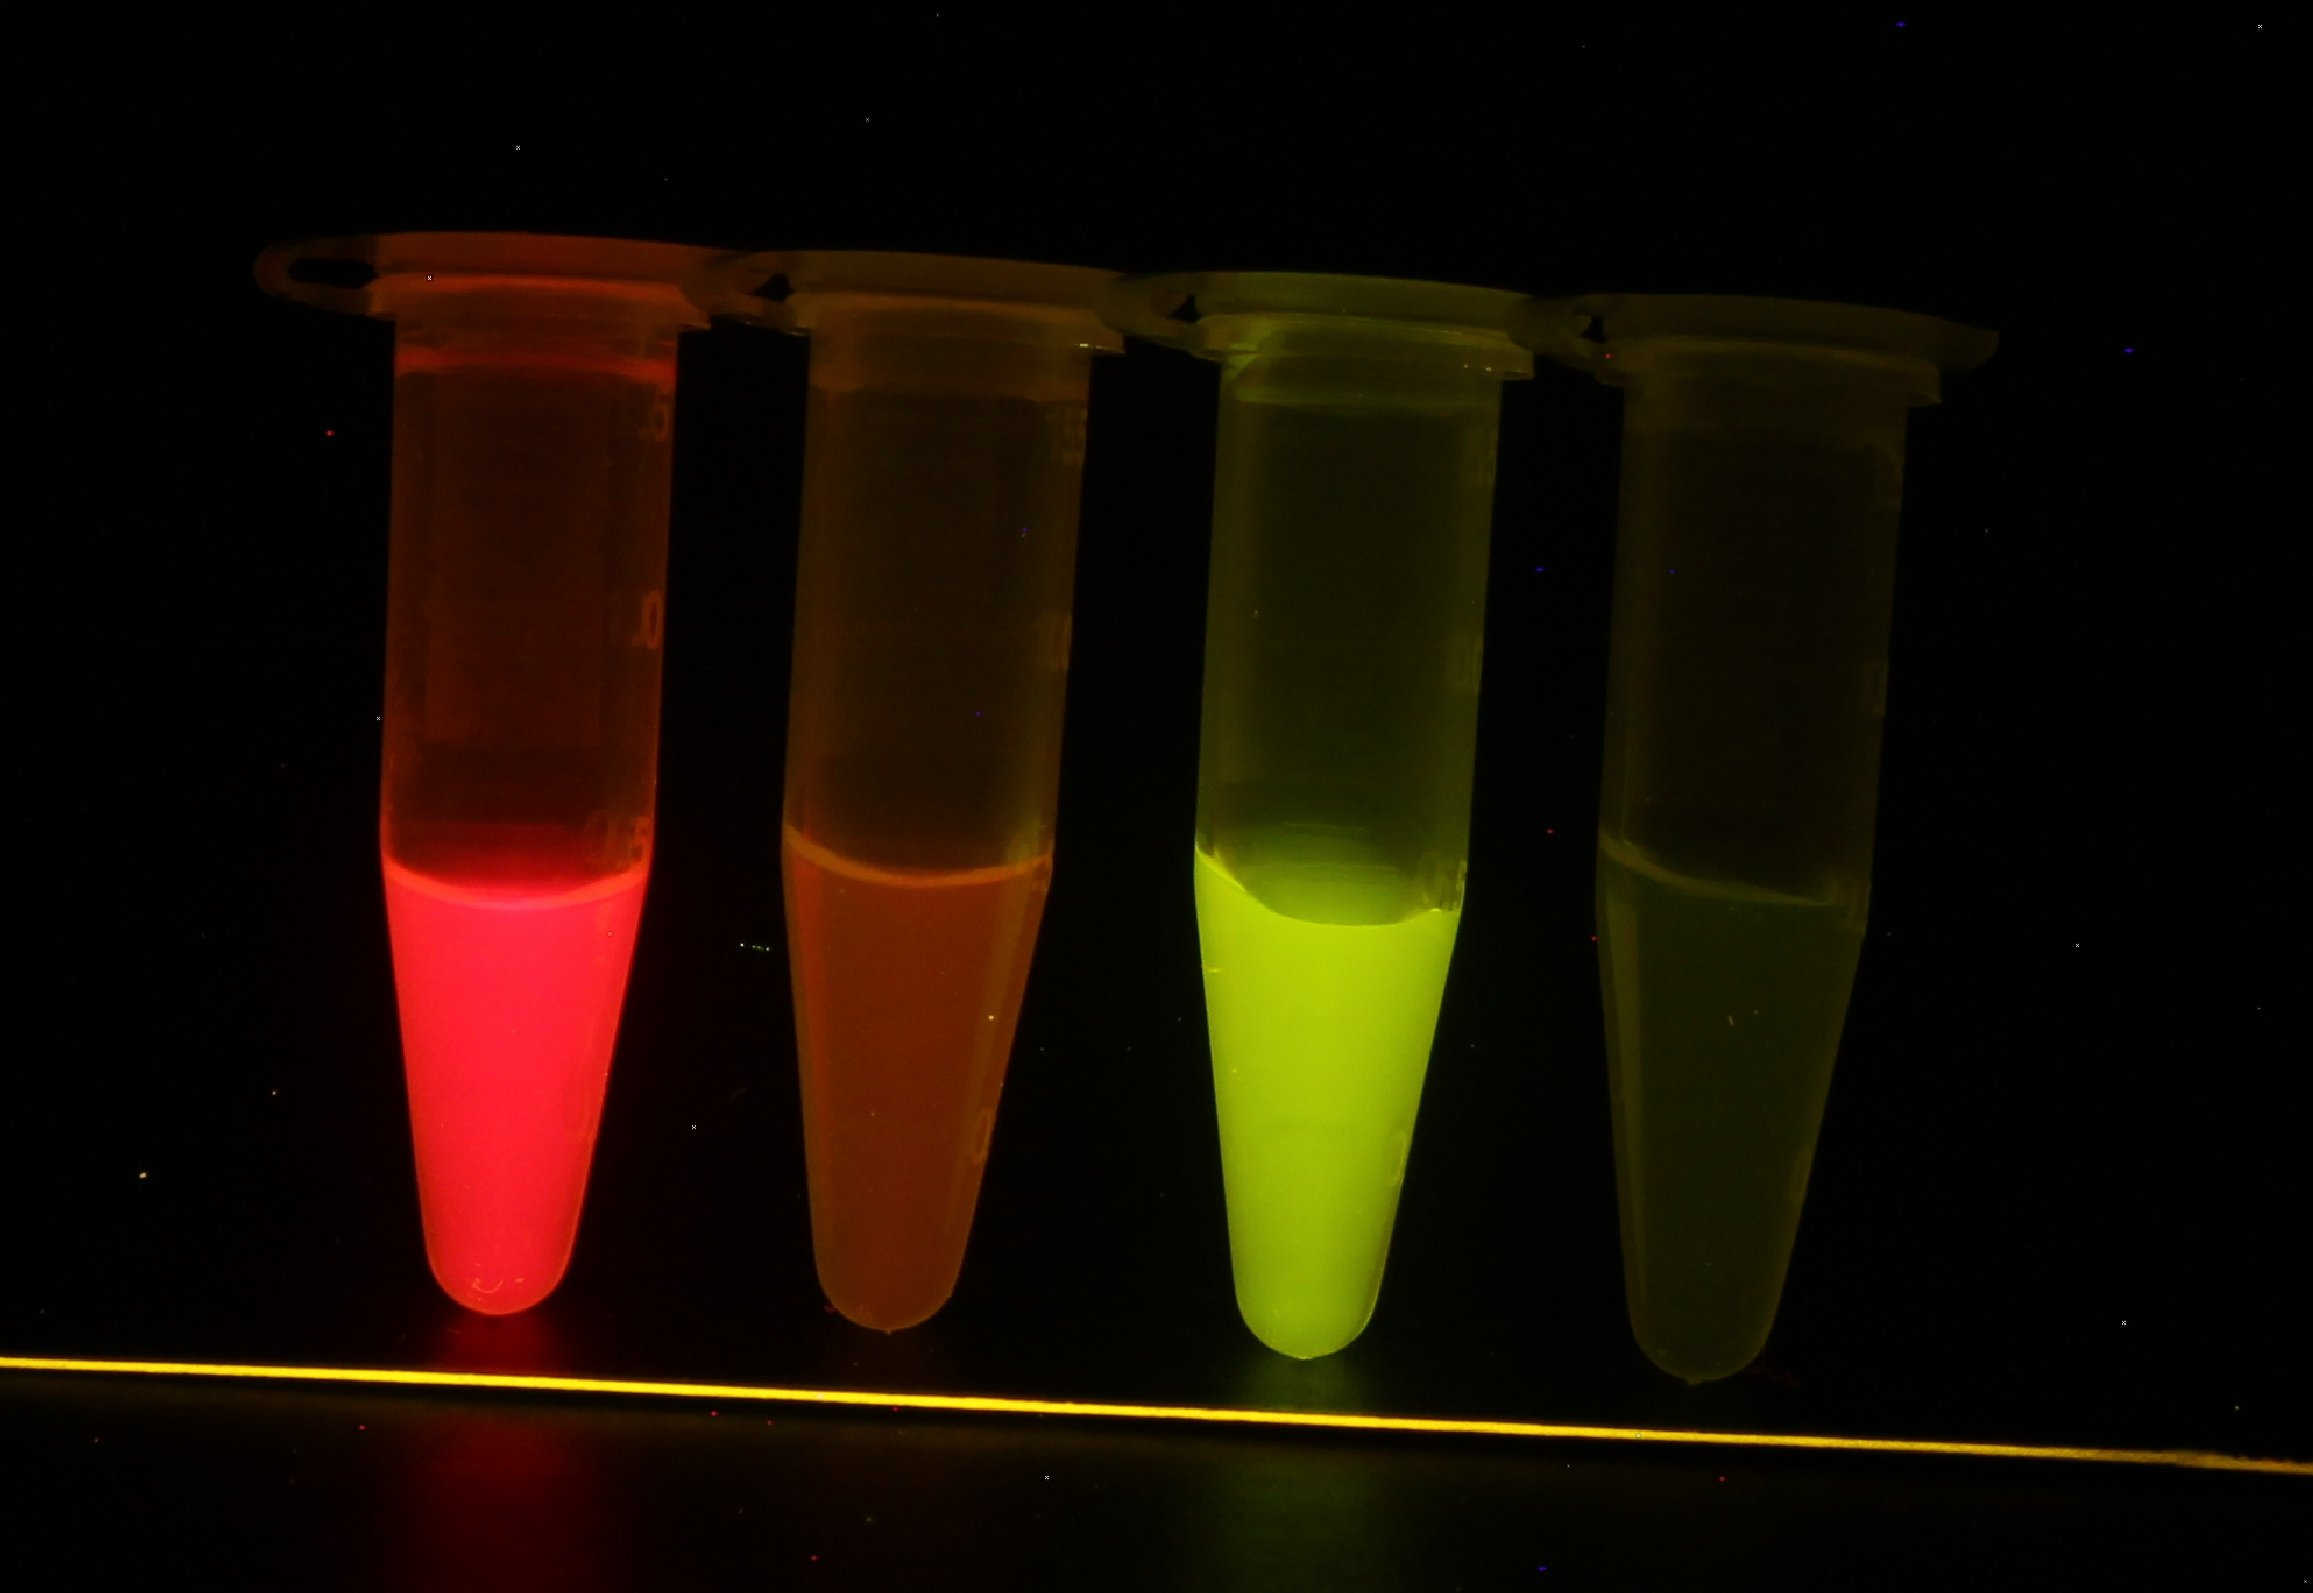 Image of tubes in a row that fluoresce green and red